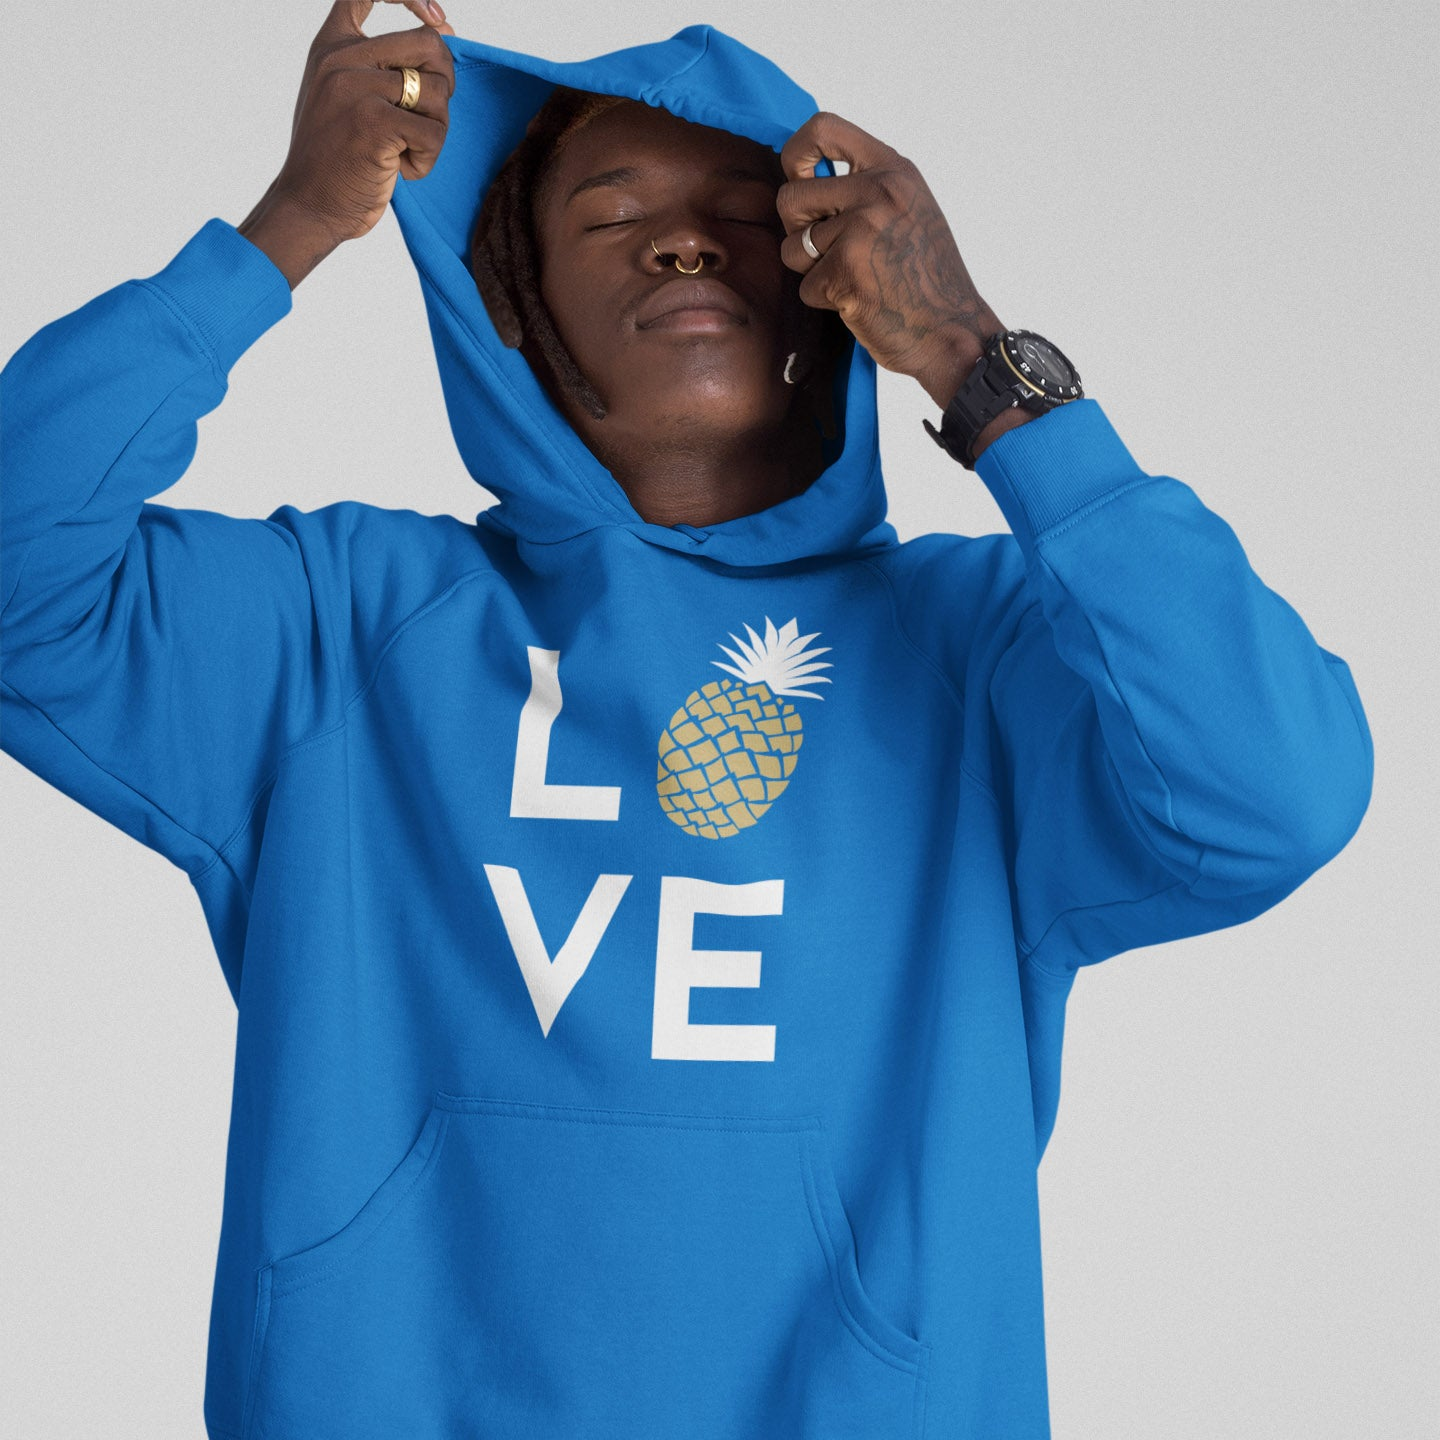 Pineapple Love Men's Hoodie - Happy Pineapple Co.